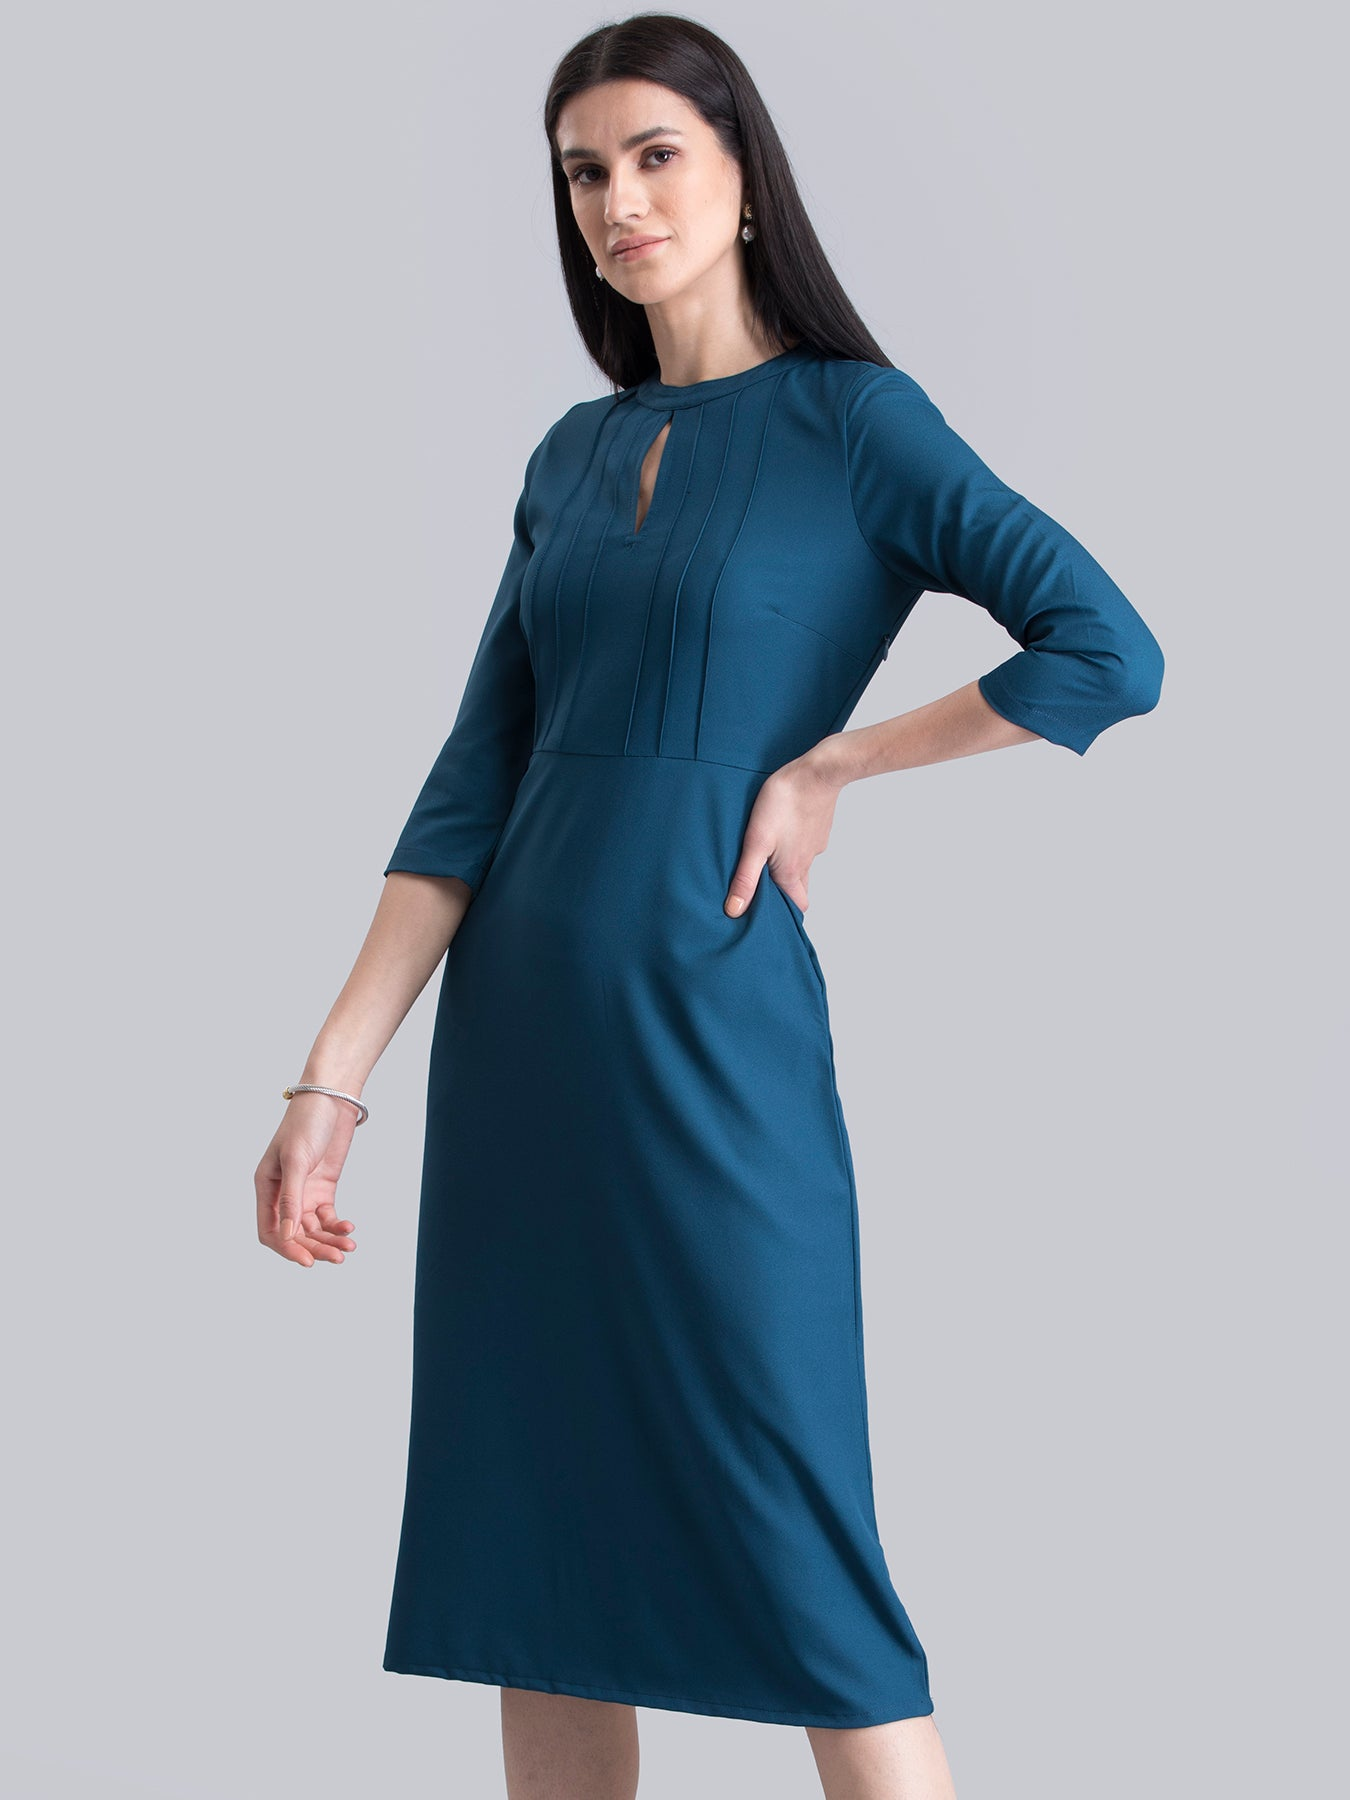 Stylised Neck Pintuck Dress - Teal